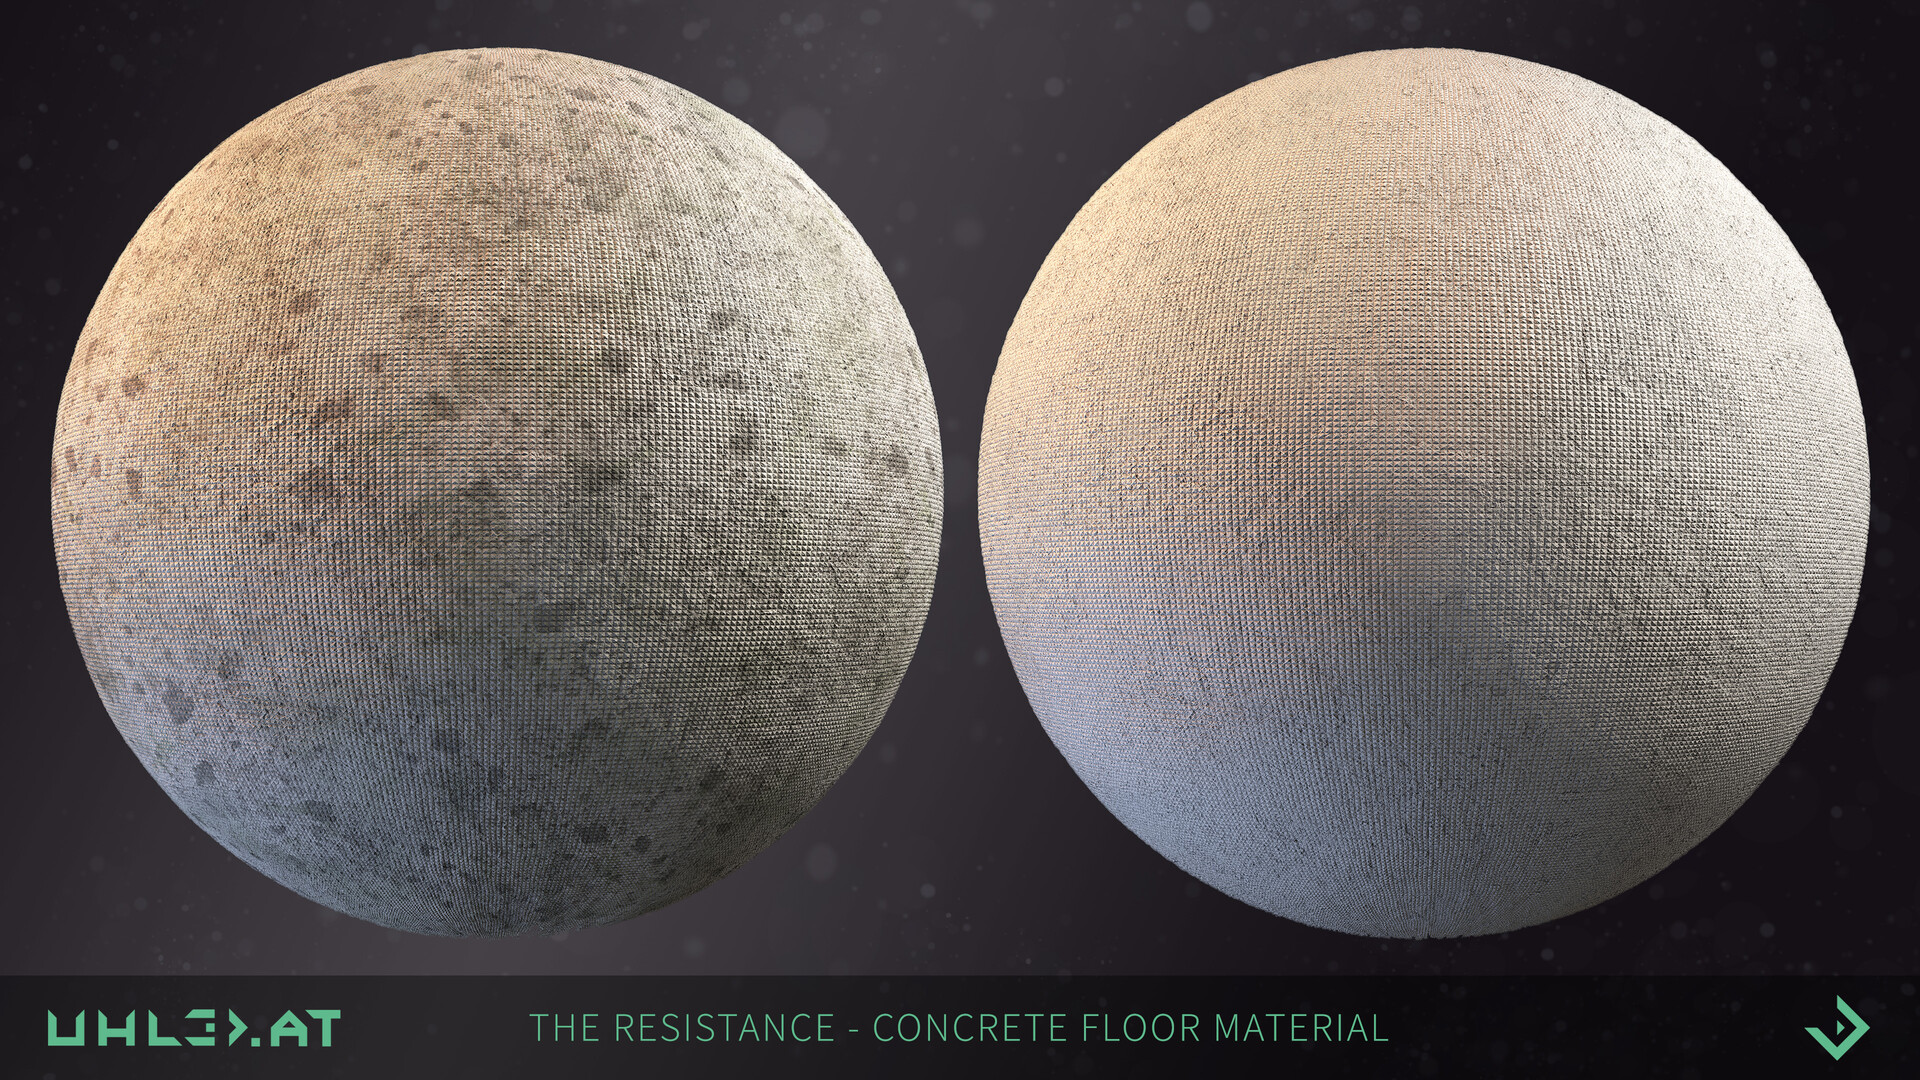 Dominik uhl the resistance concretefloor material 01